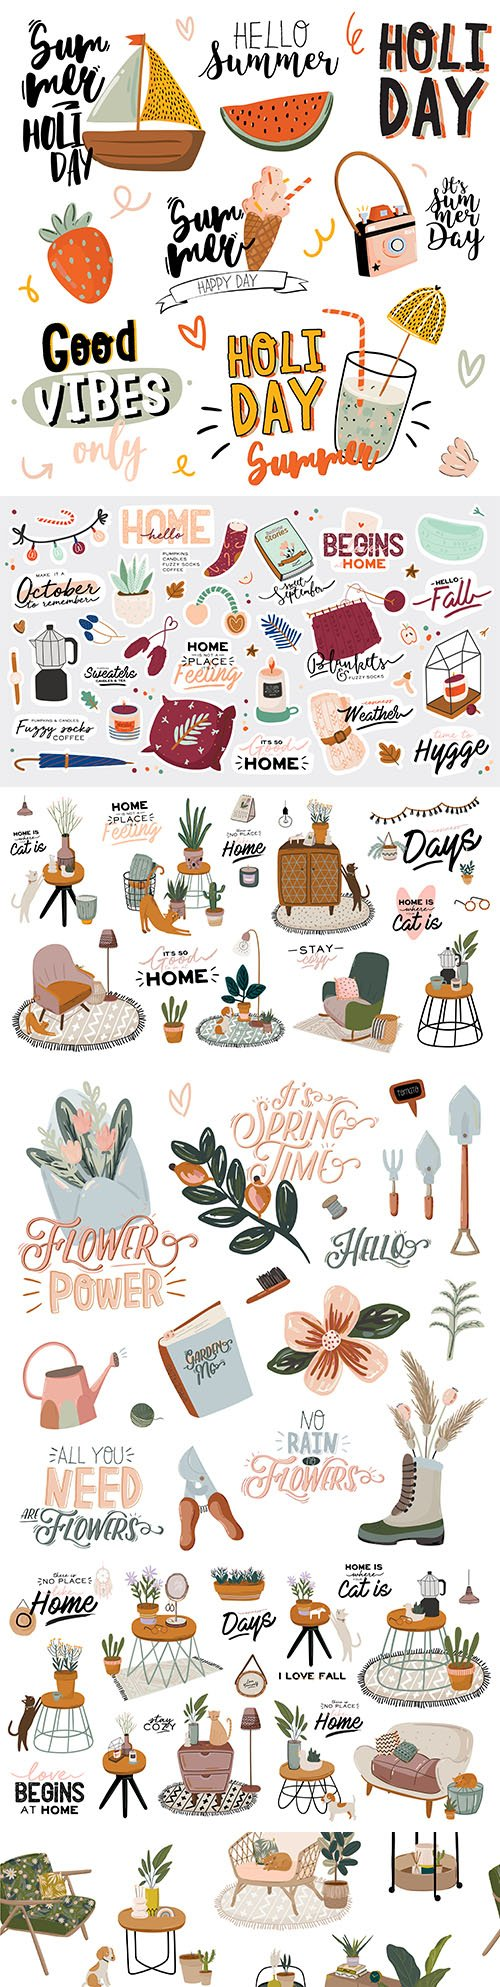 Fashion home interior and summer printing with festive elements